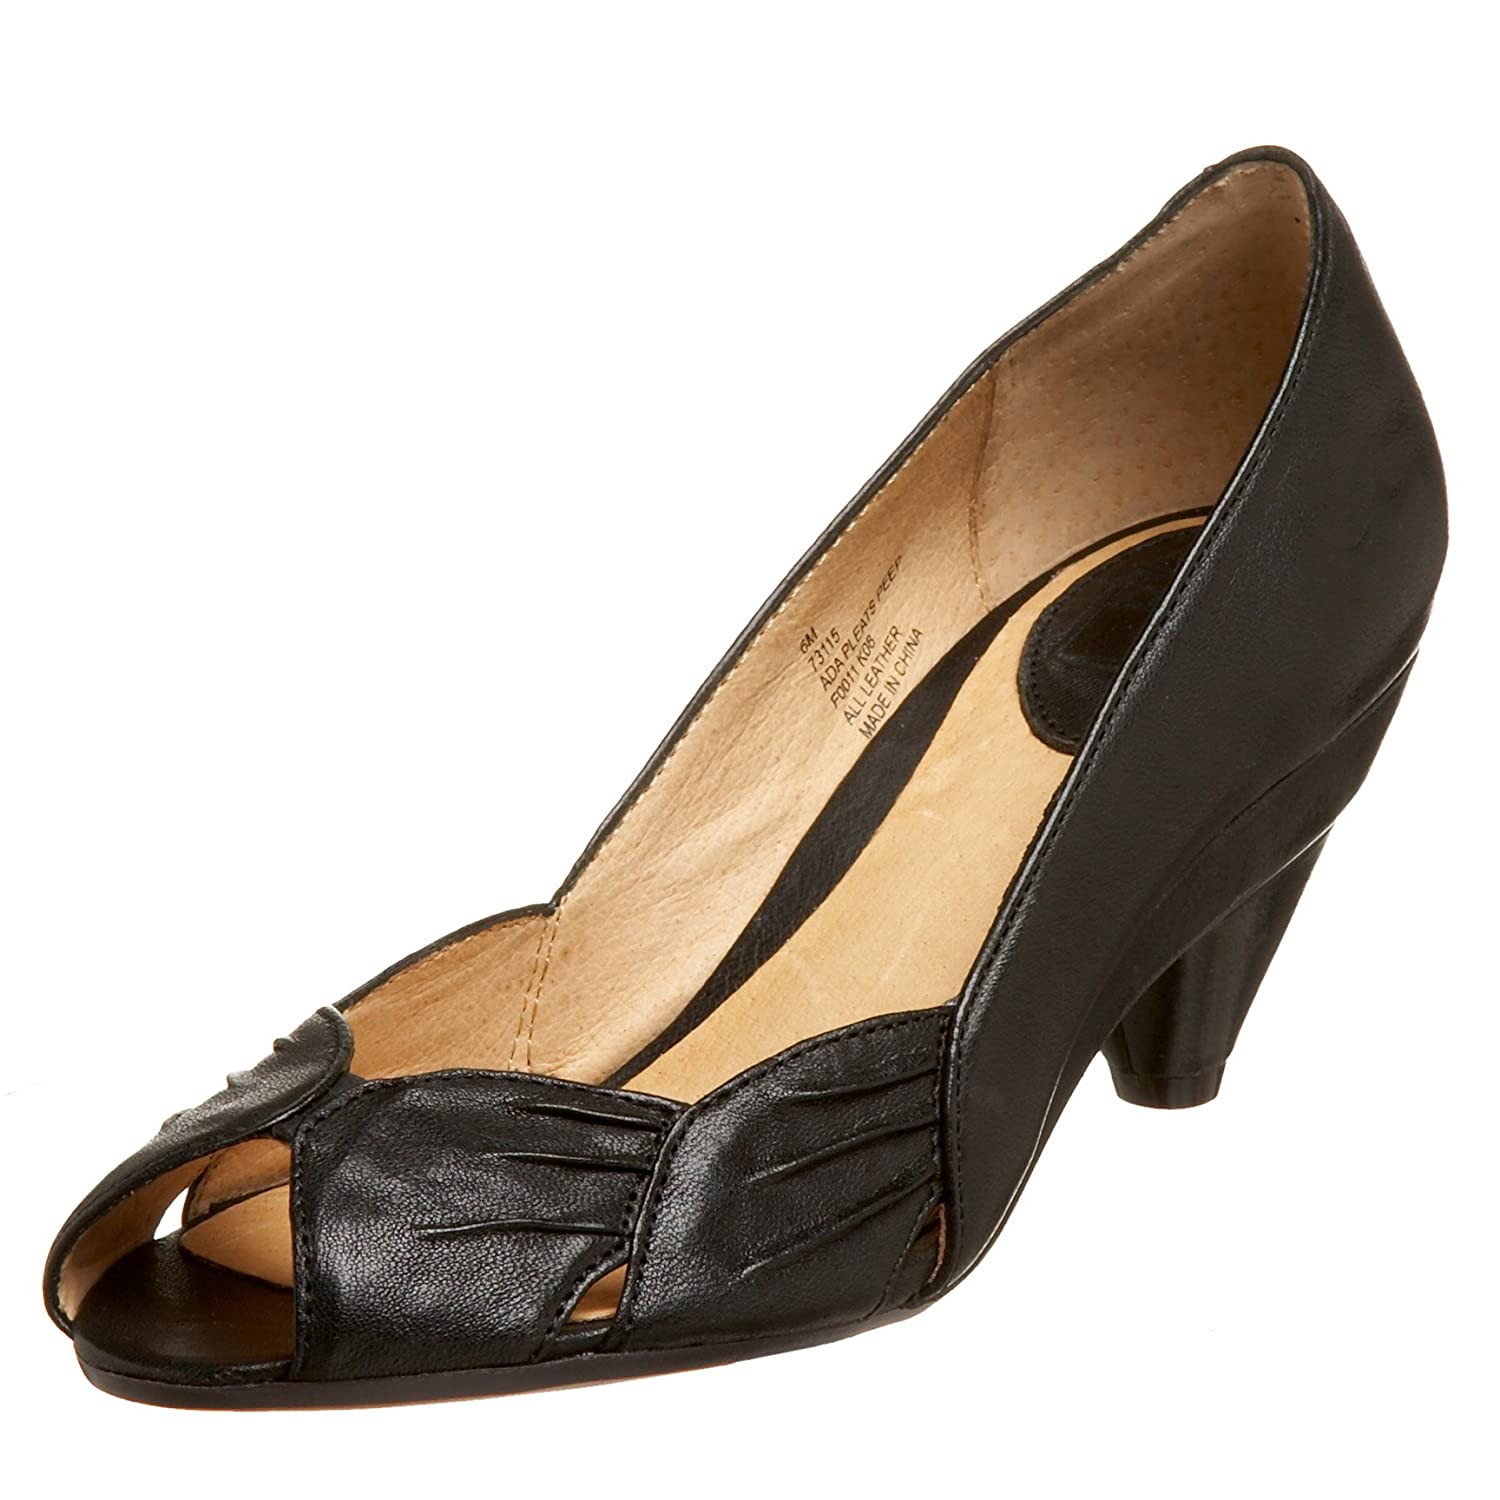 FRYE Ada Pleats Peep Toe Pump - Free Overnight Shipping & Return Shipping: Endless.com from endless.com